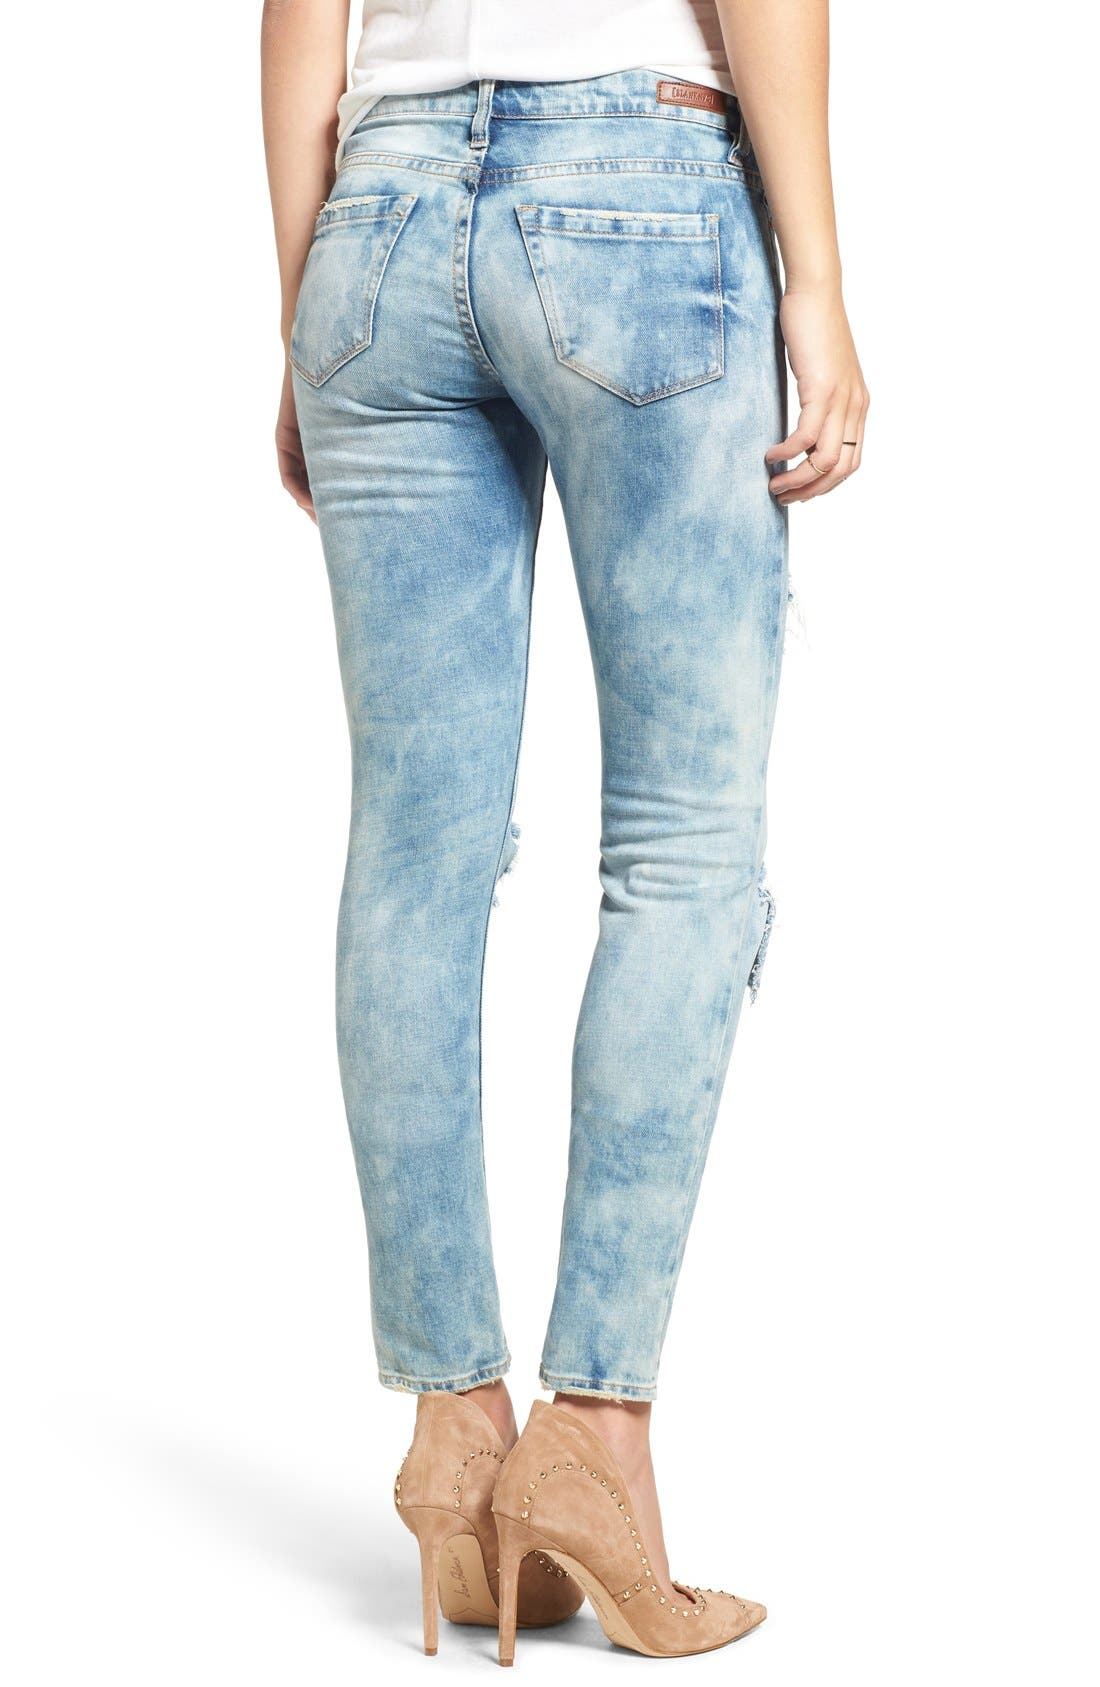 BLANKNYC, Good Vibes Distressed Skinny Jeans, Alternate thumbnail 3, color, 420